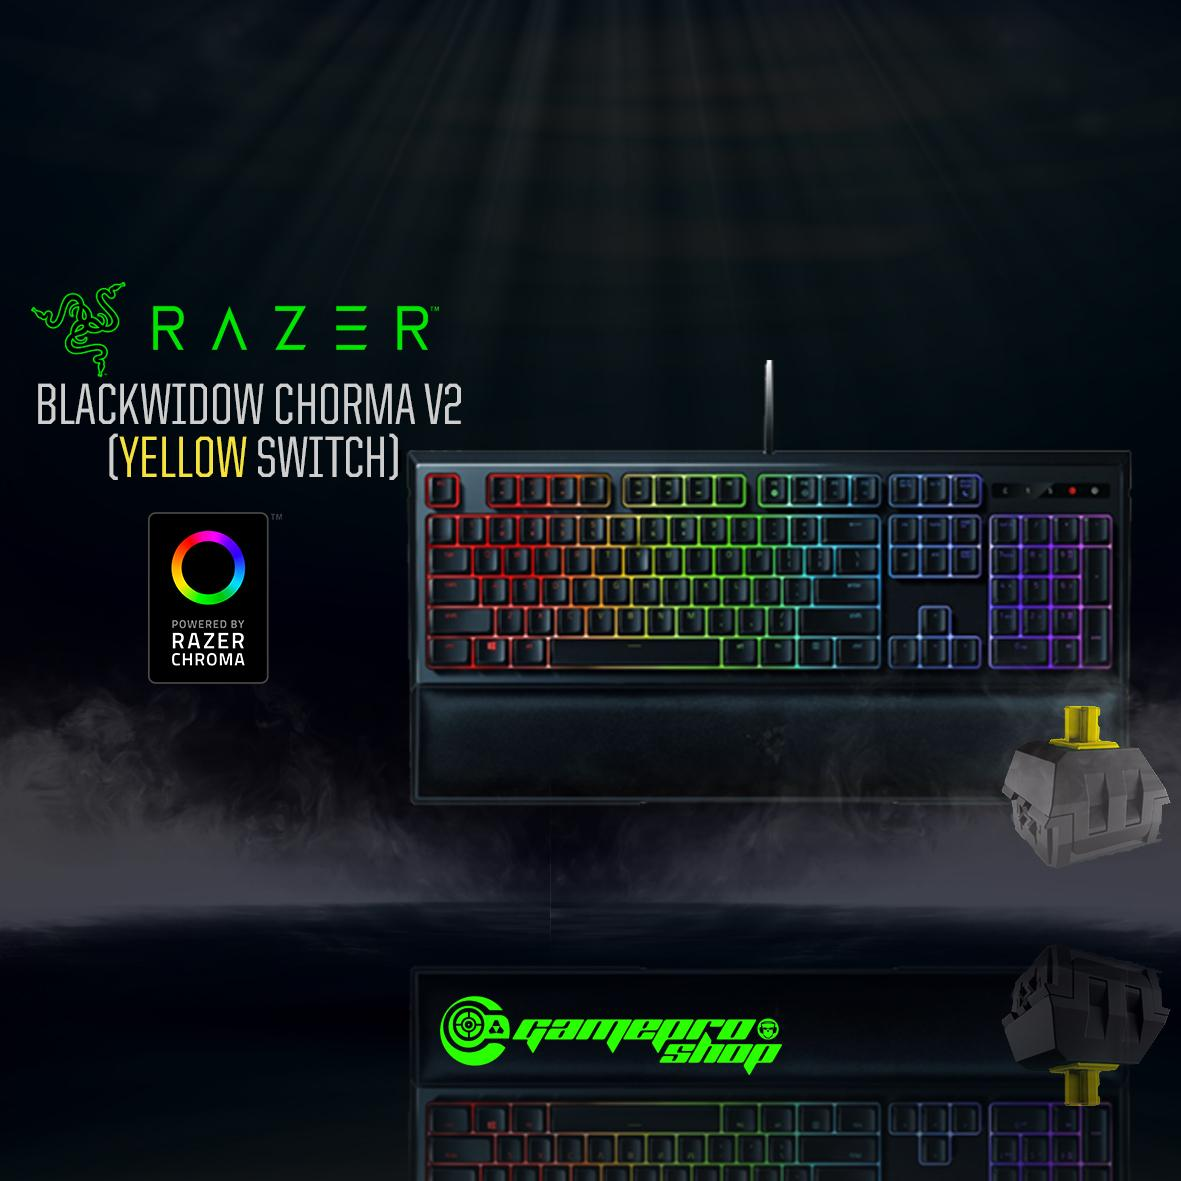 Razer Blackwidow Chroma V2 (YELLOW SWITCH) *GSS PROMO*